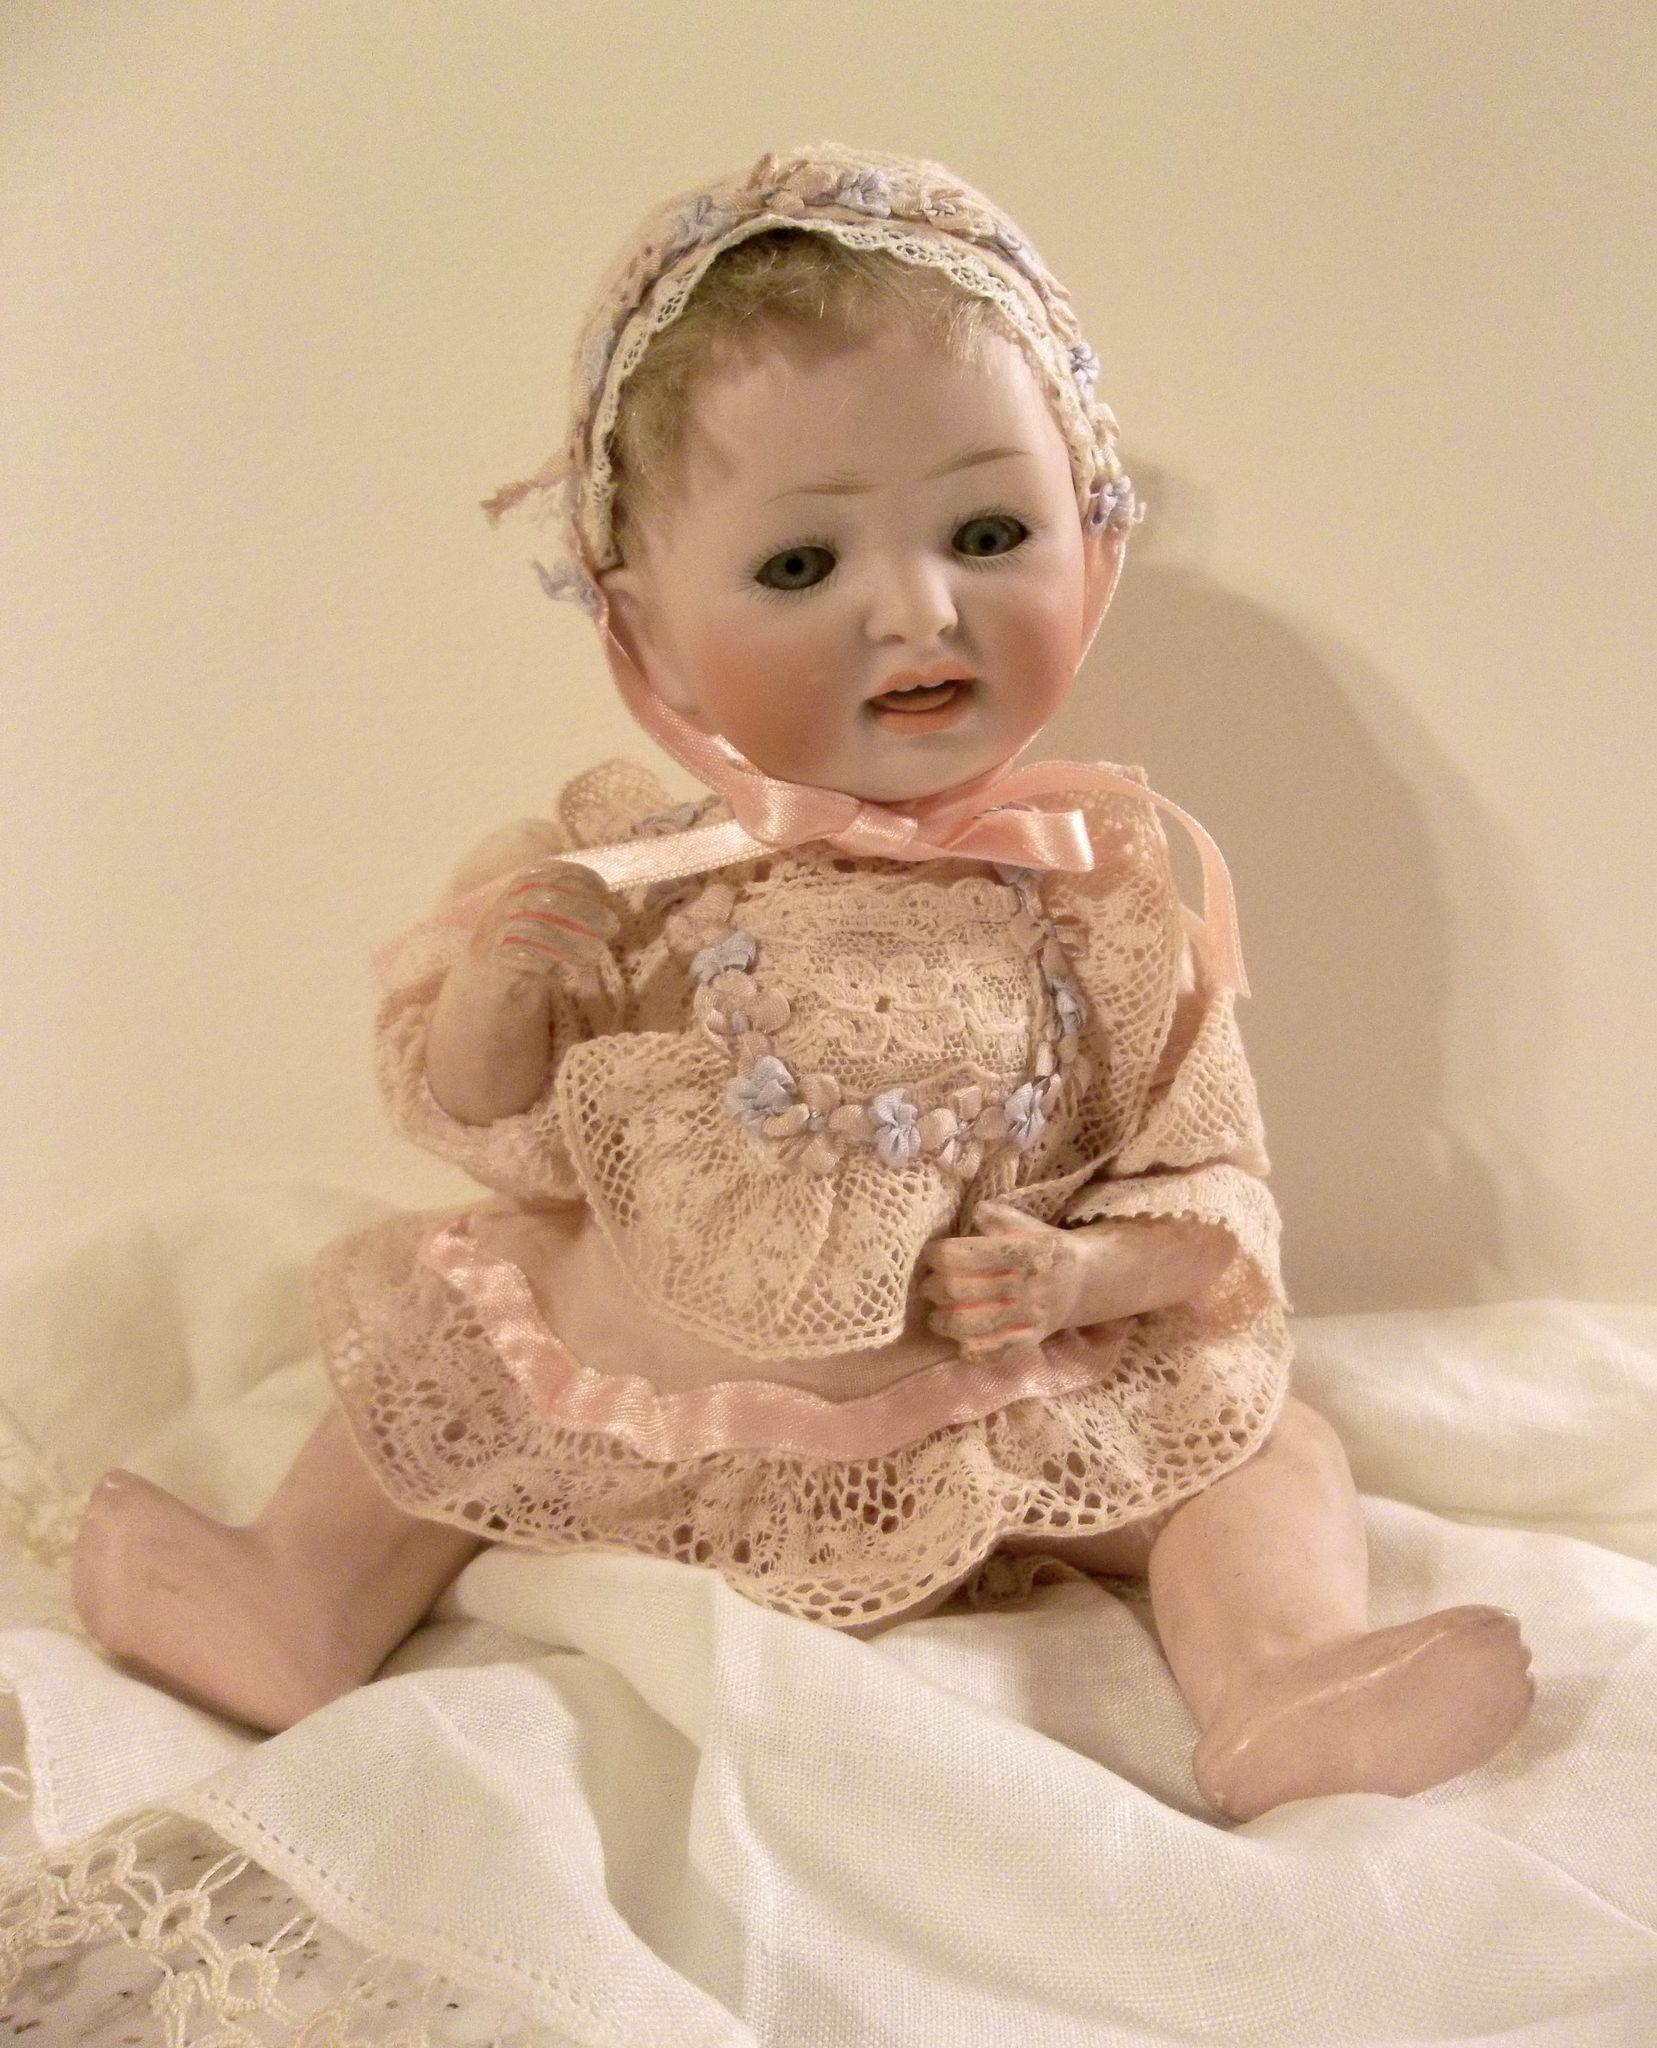 precious 9 hertel schwab character baby 152 c1910 from theplayfulspirit on ruby lane. Black Bedroom Furniture Sets. Home Design Ideas